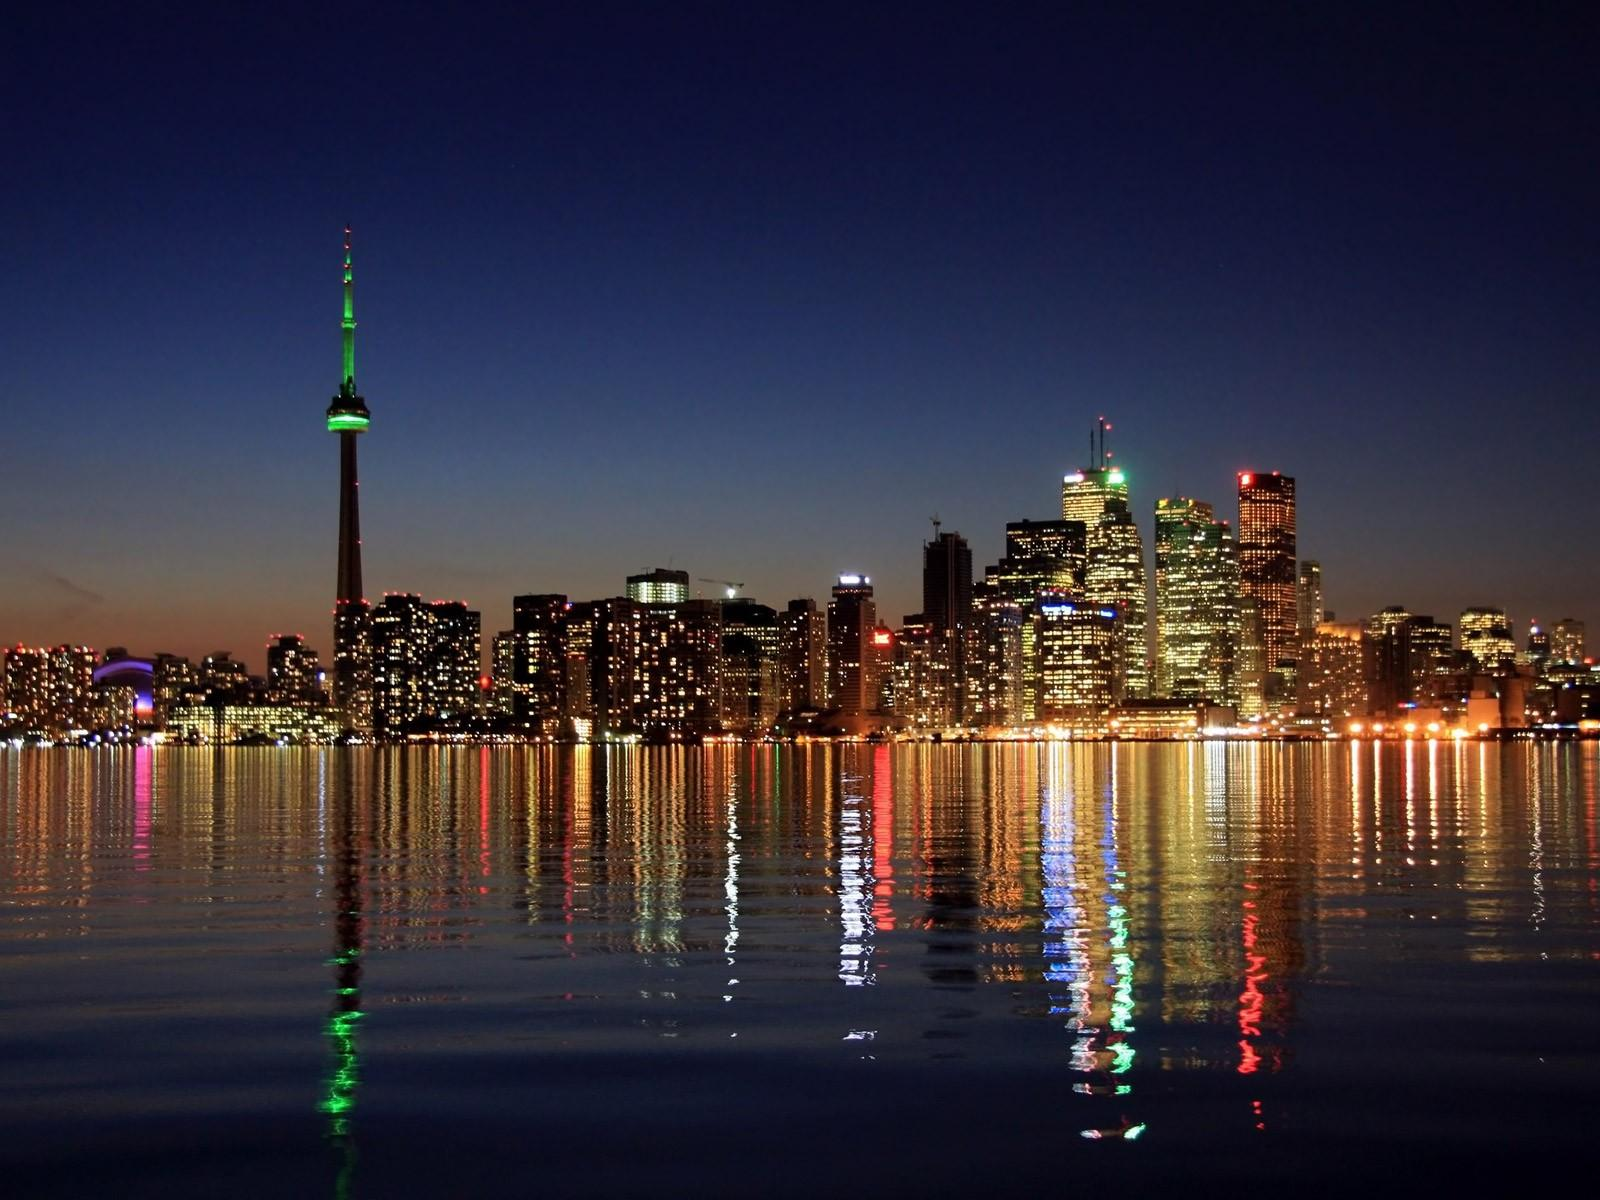 Toronto Beautiful Night Skyline Wallpaper